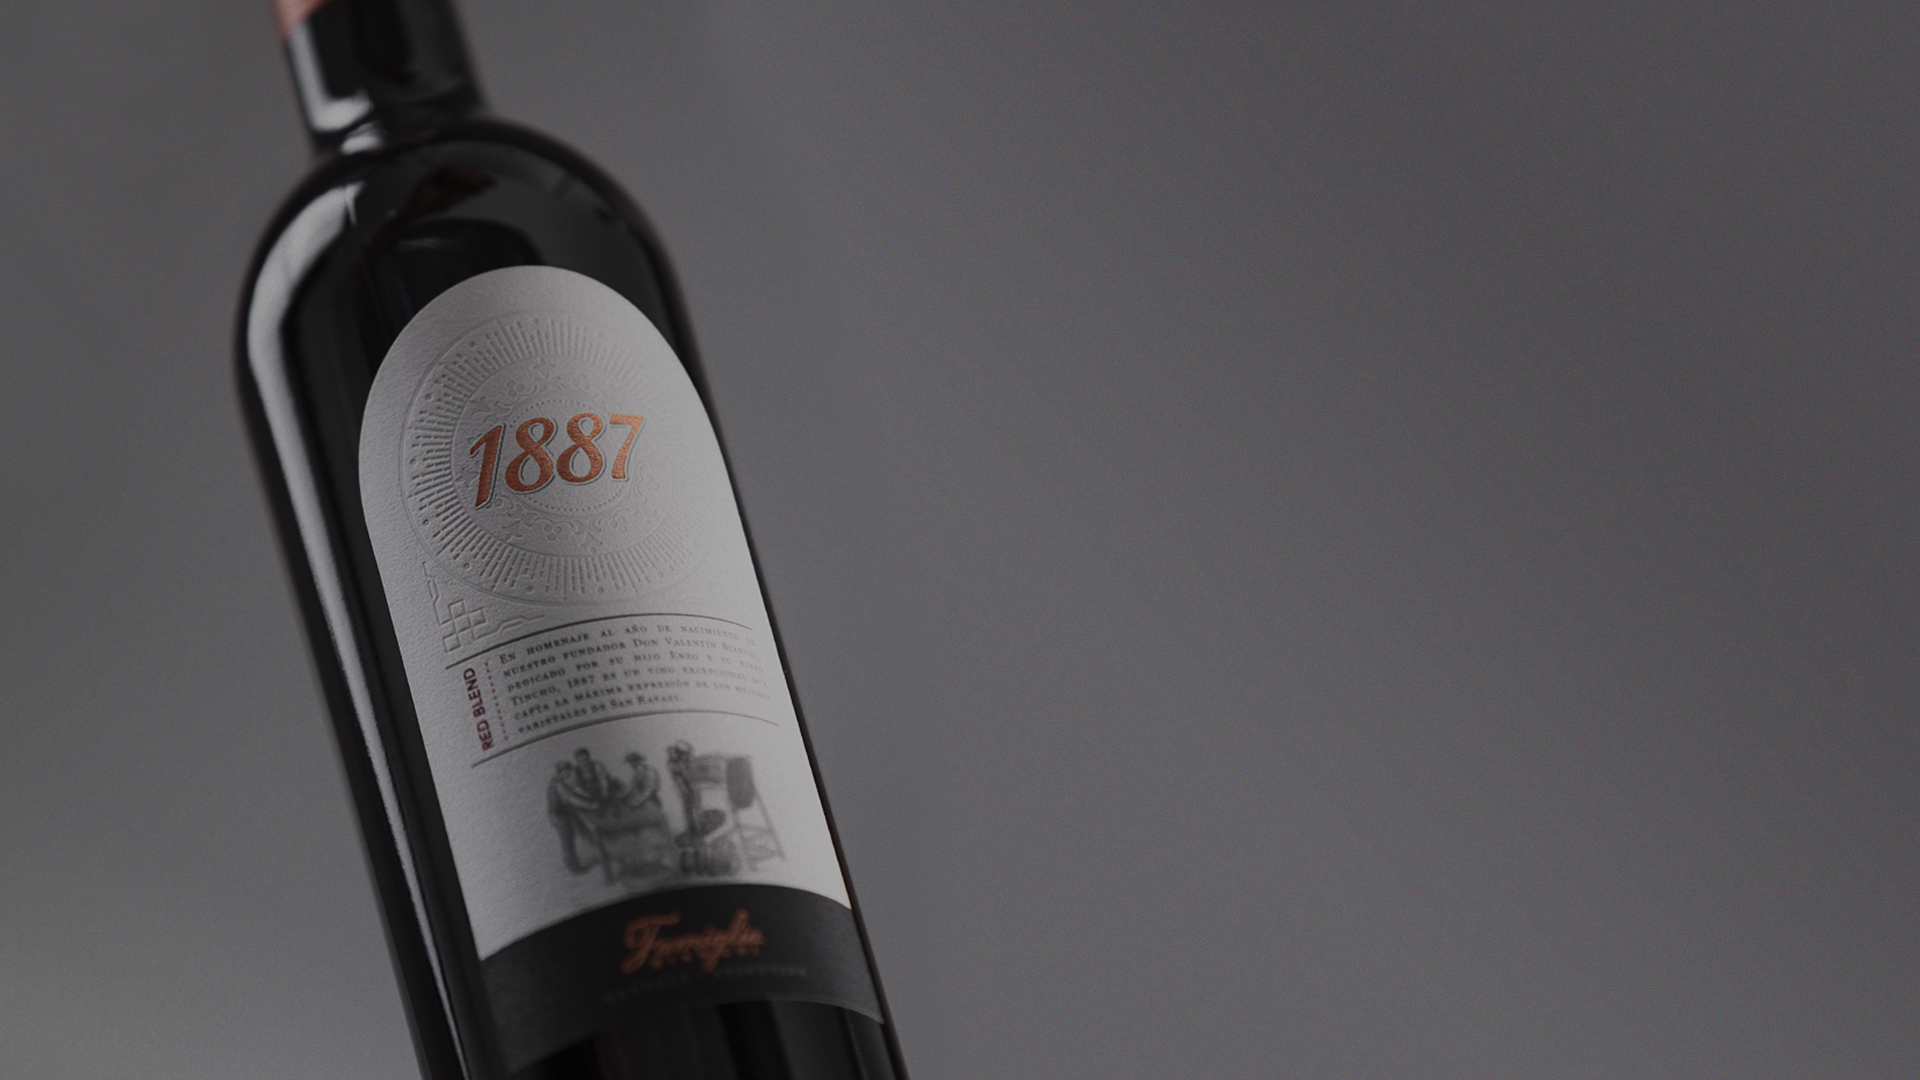 1887 Red Blend bottle